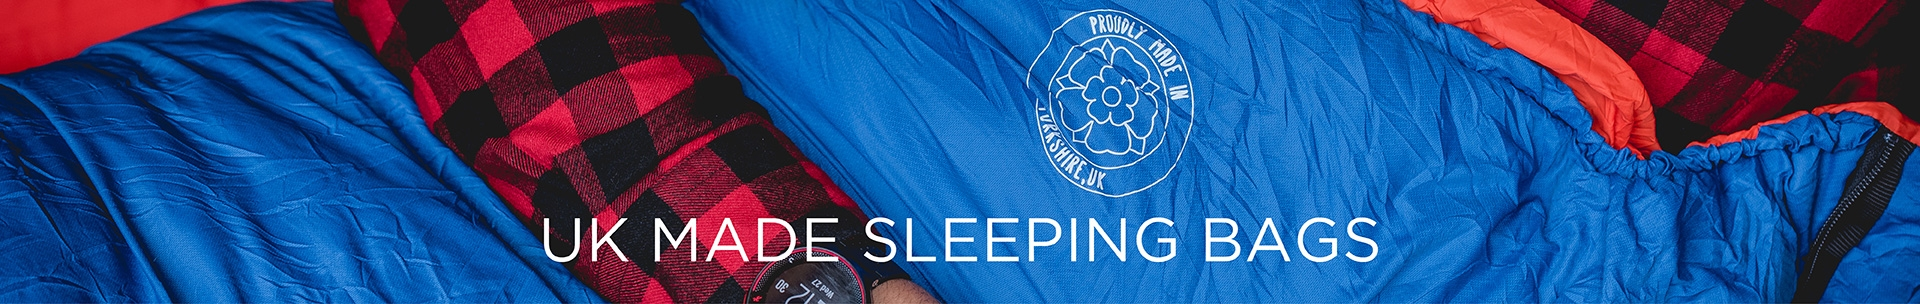 UK Softie Sleeping Bag Range